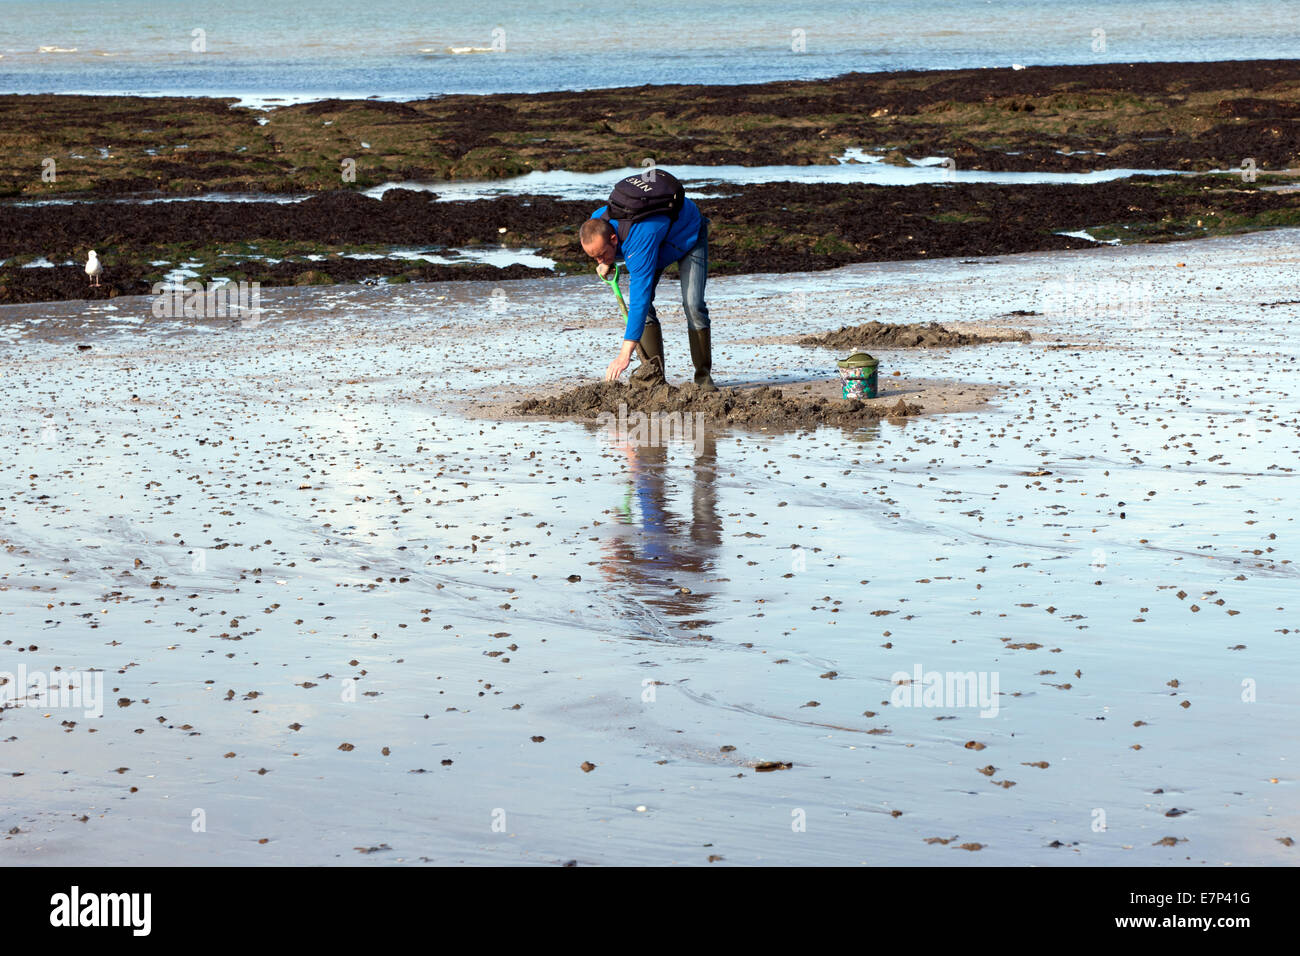 Man digging for lugworms on the beach at Margate, Kent - Stock Image